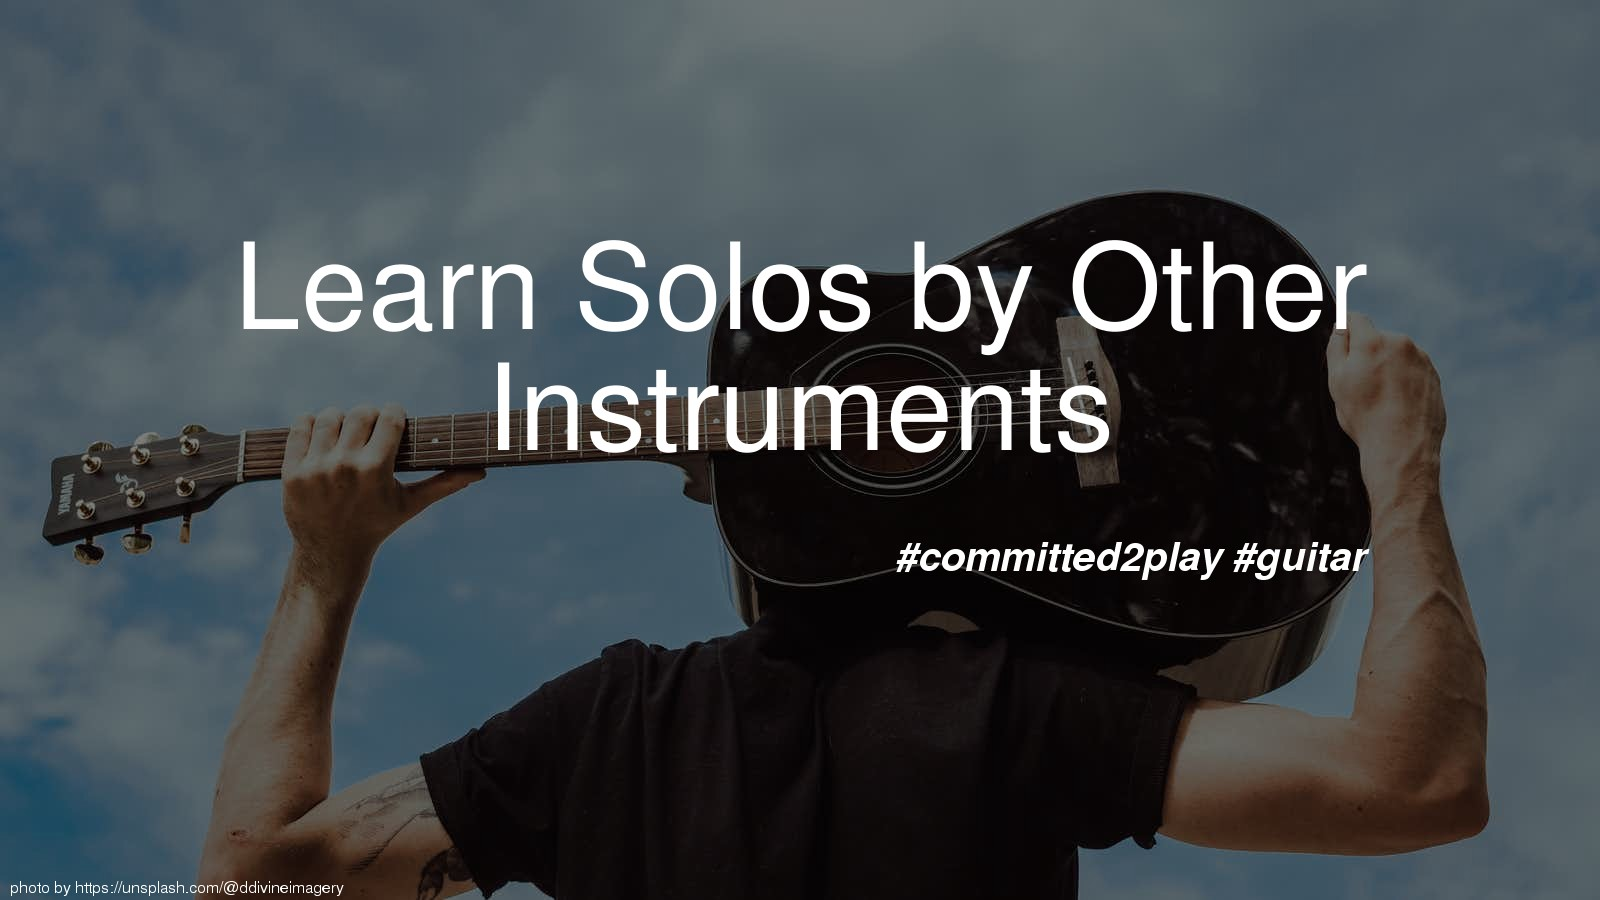 Learn Solos by Other Instruments